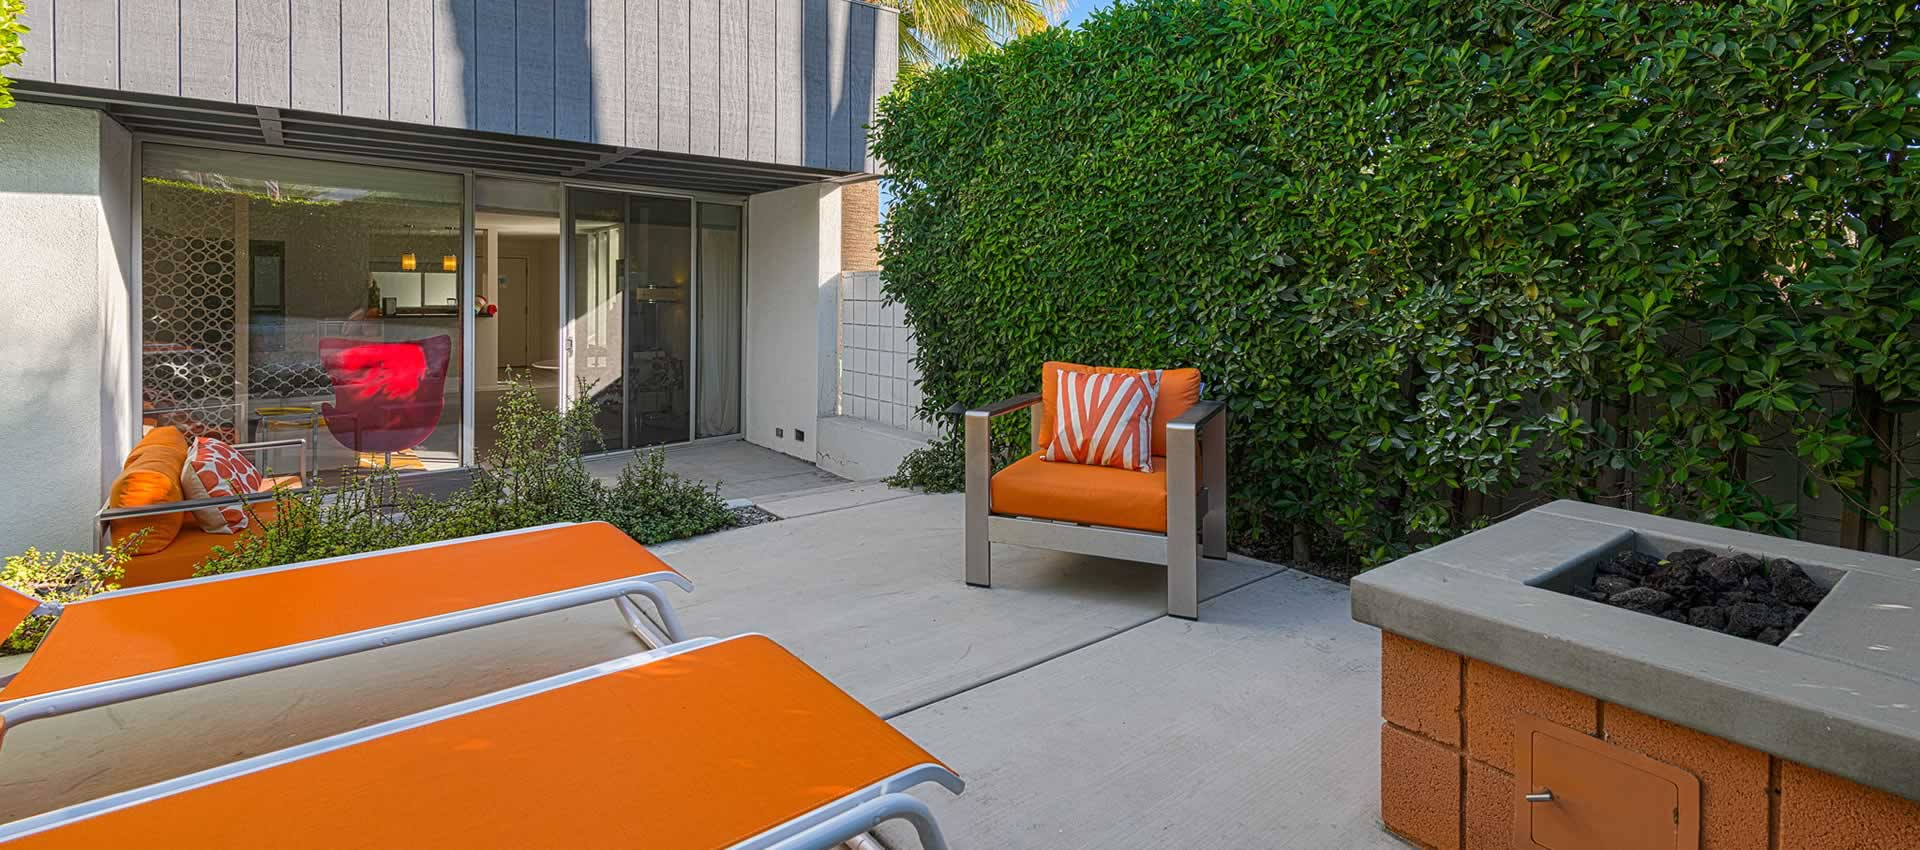 studio-103-ada-slider-private-patio-fire-pit